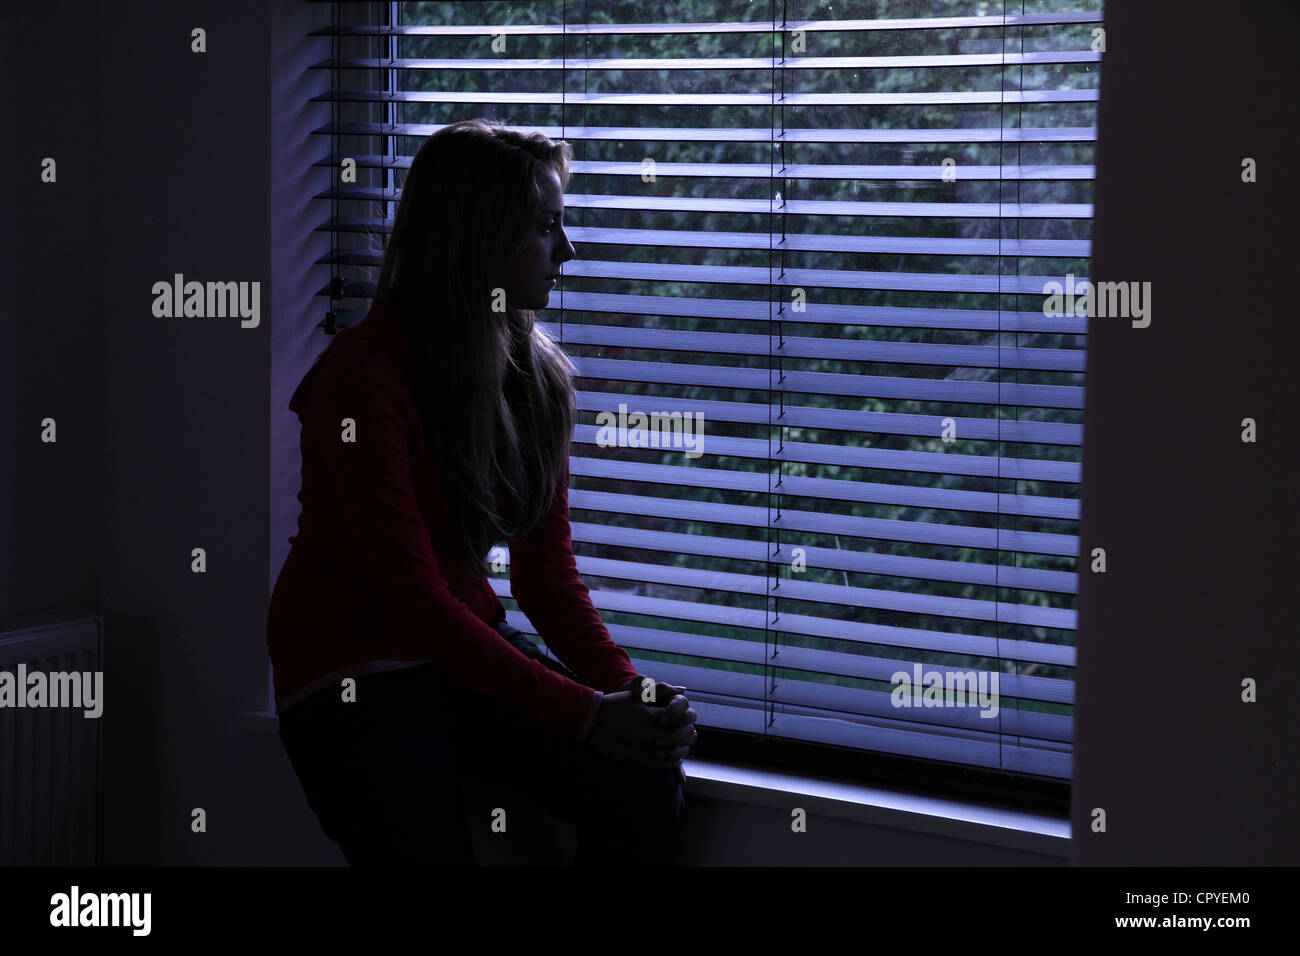 Dark room with light through window - Young Female Sitting Alone In A Dark Room Looking Out Through A Window Blind